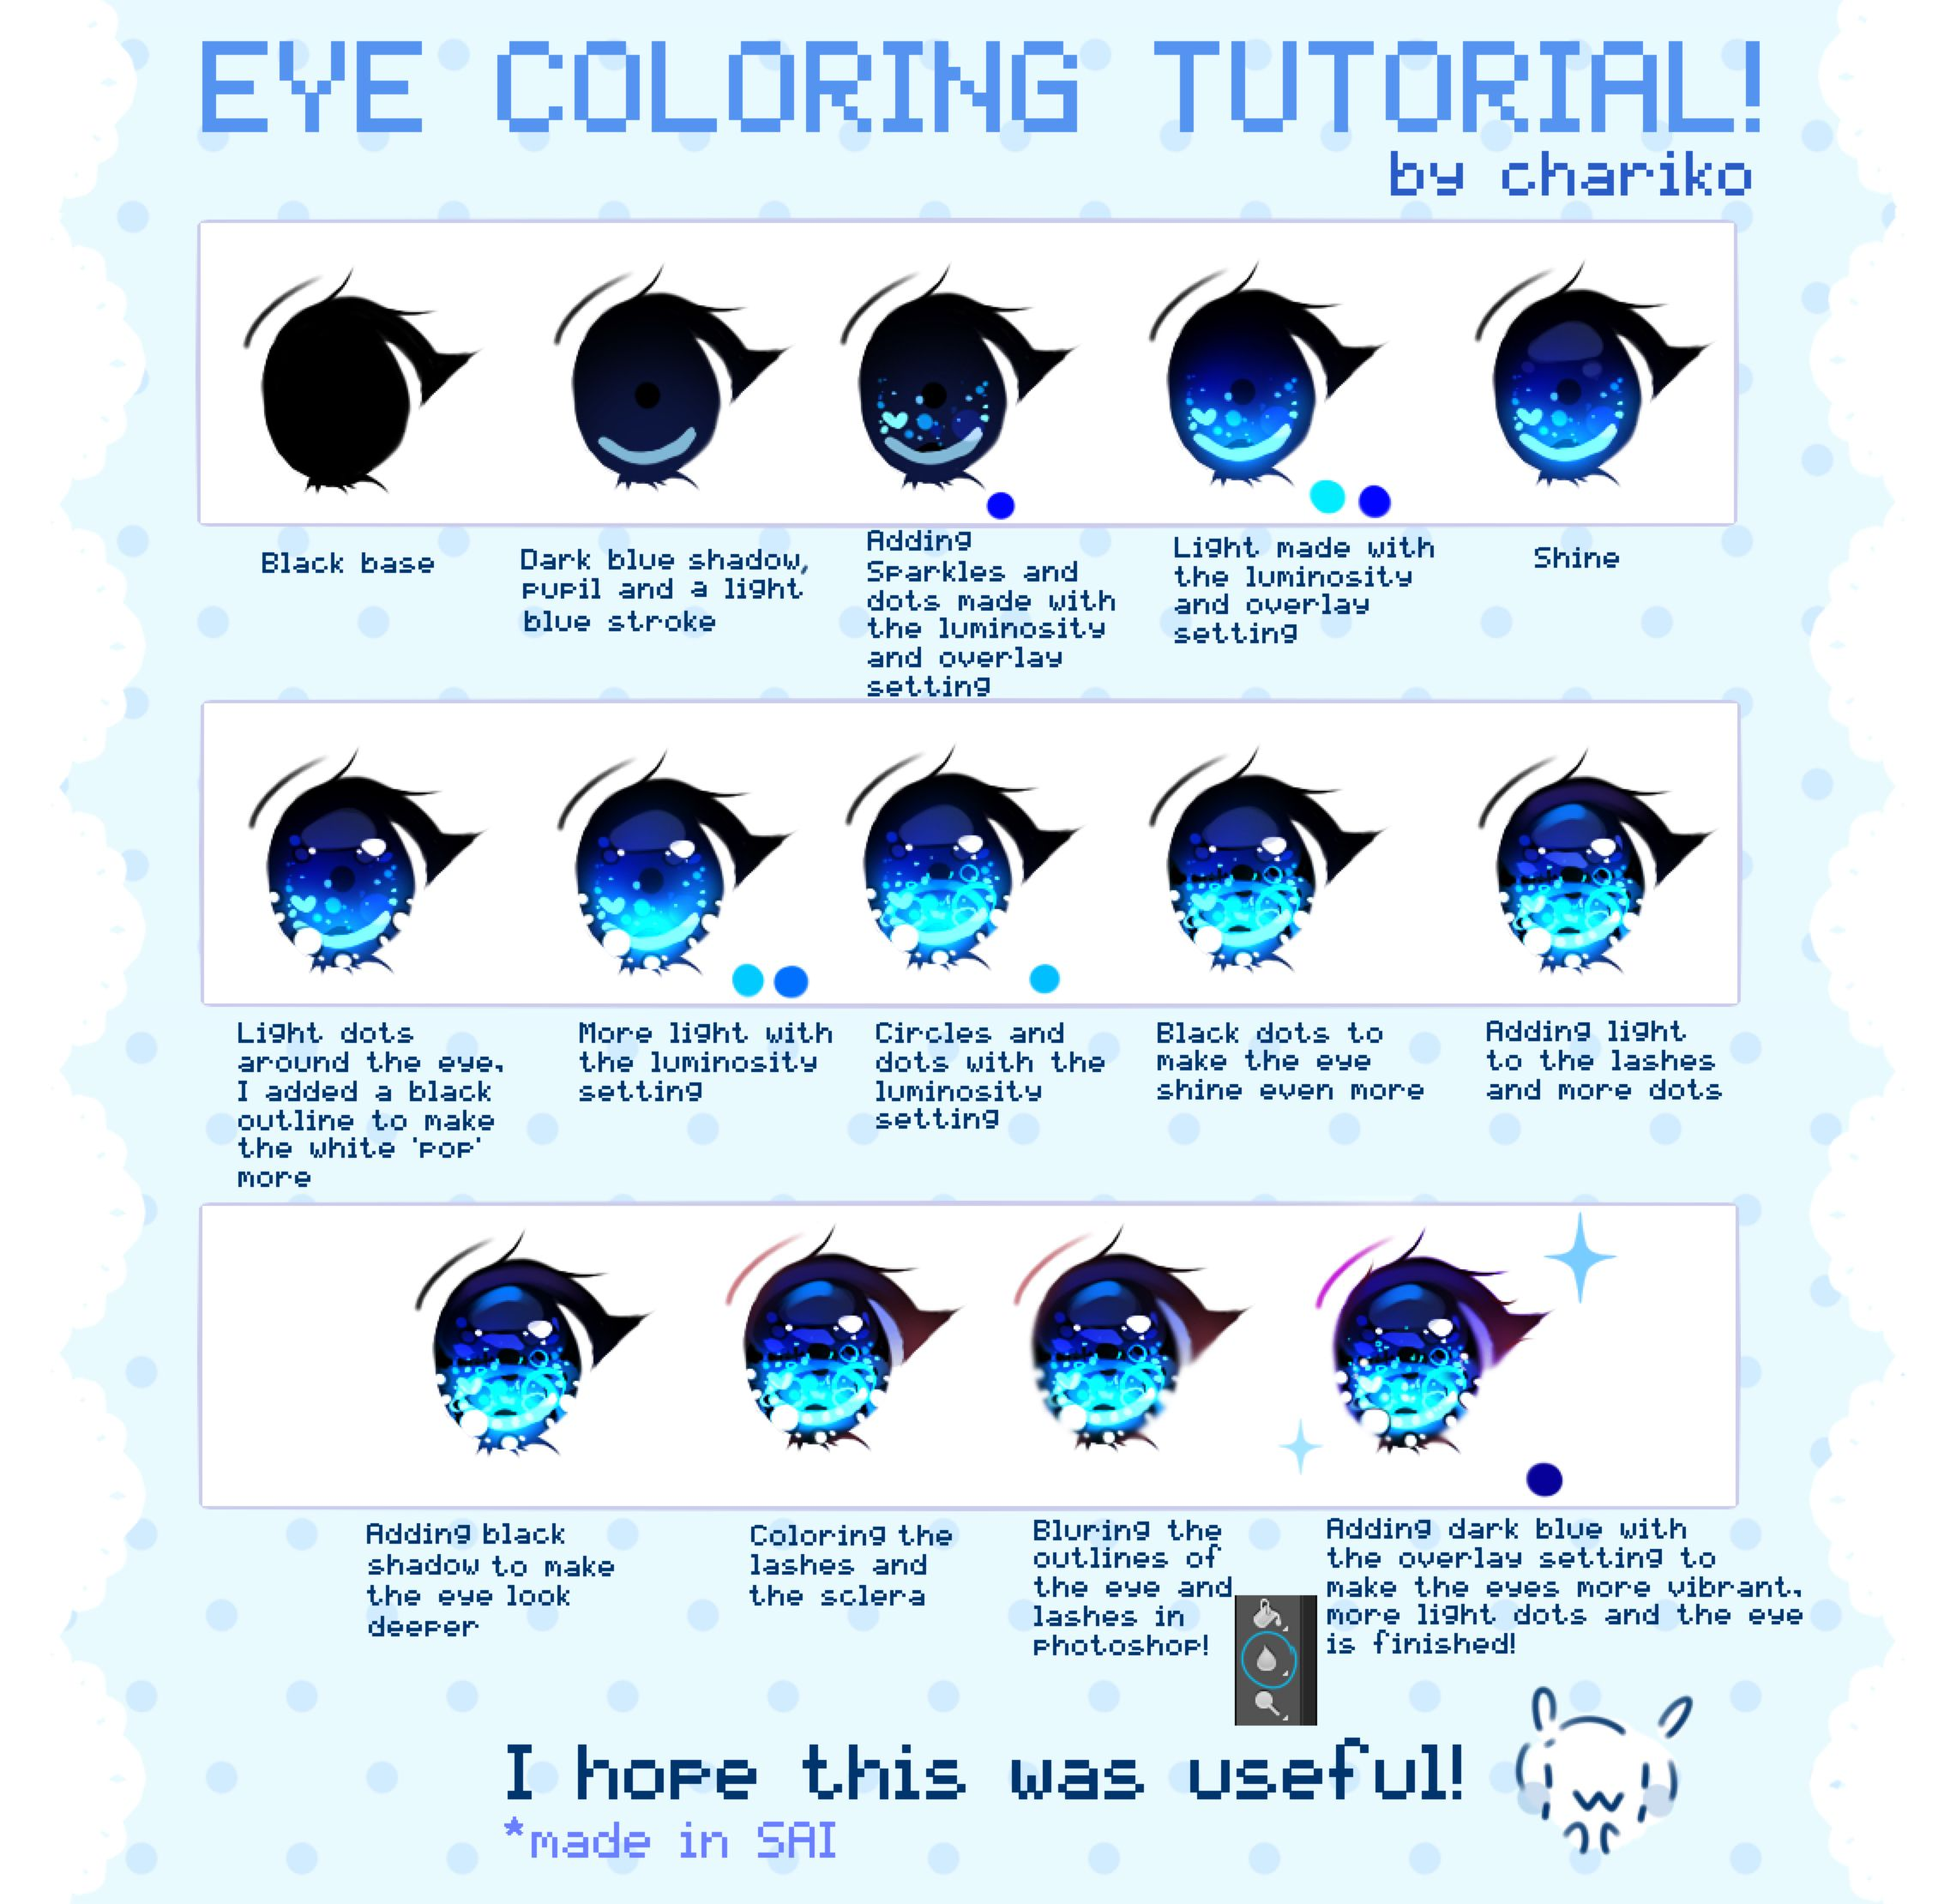 Eye Coloring Tutorial By Chariko On Deviantart Risovanie Glaza